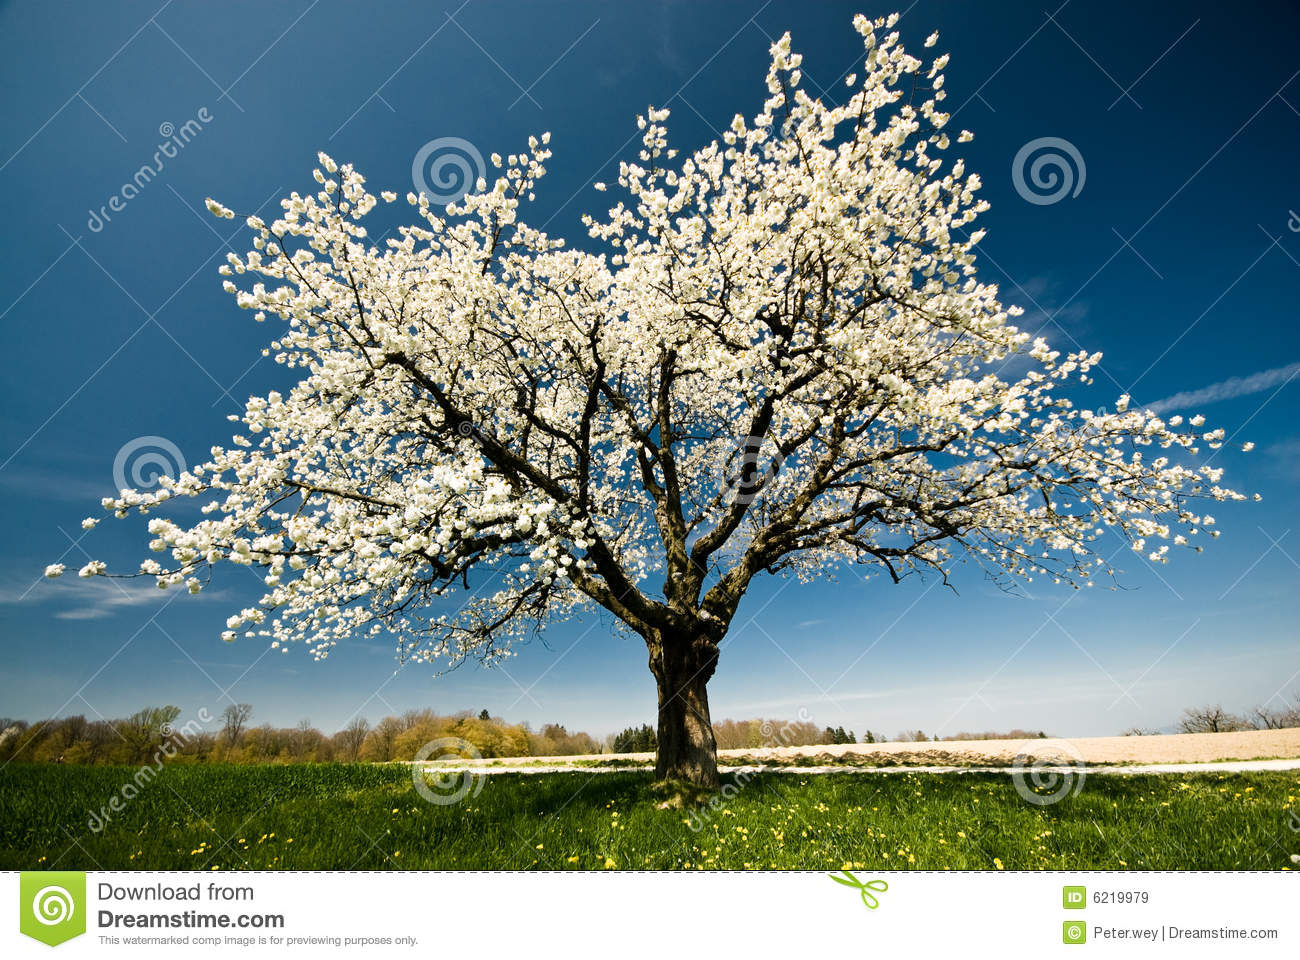 Blossoming tree in spring.